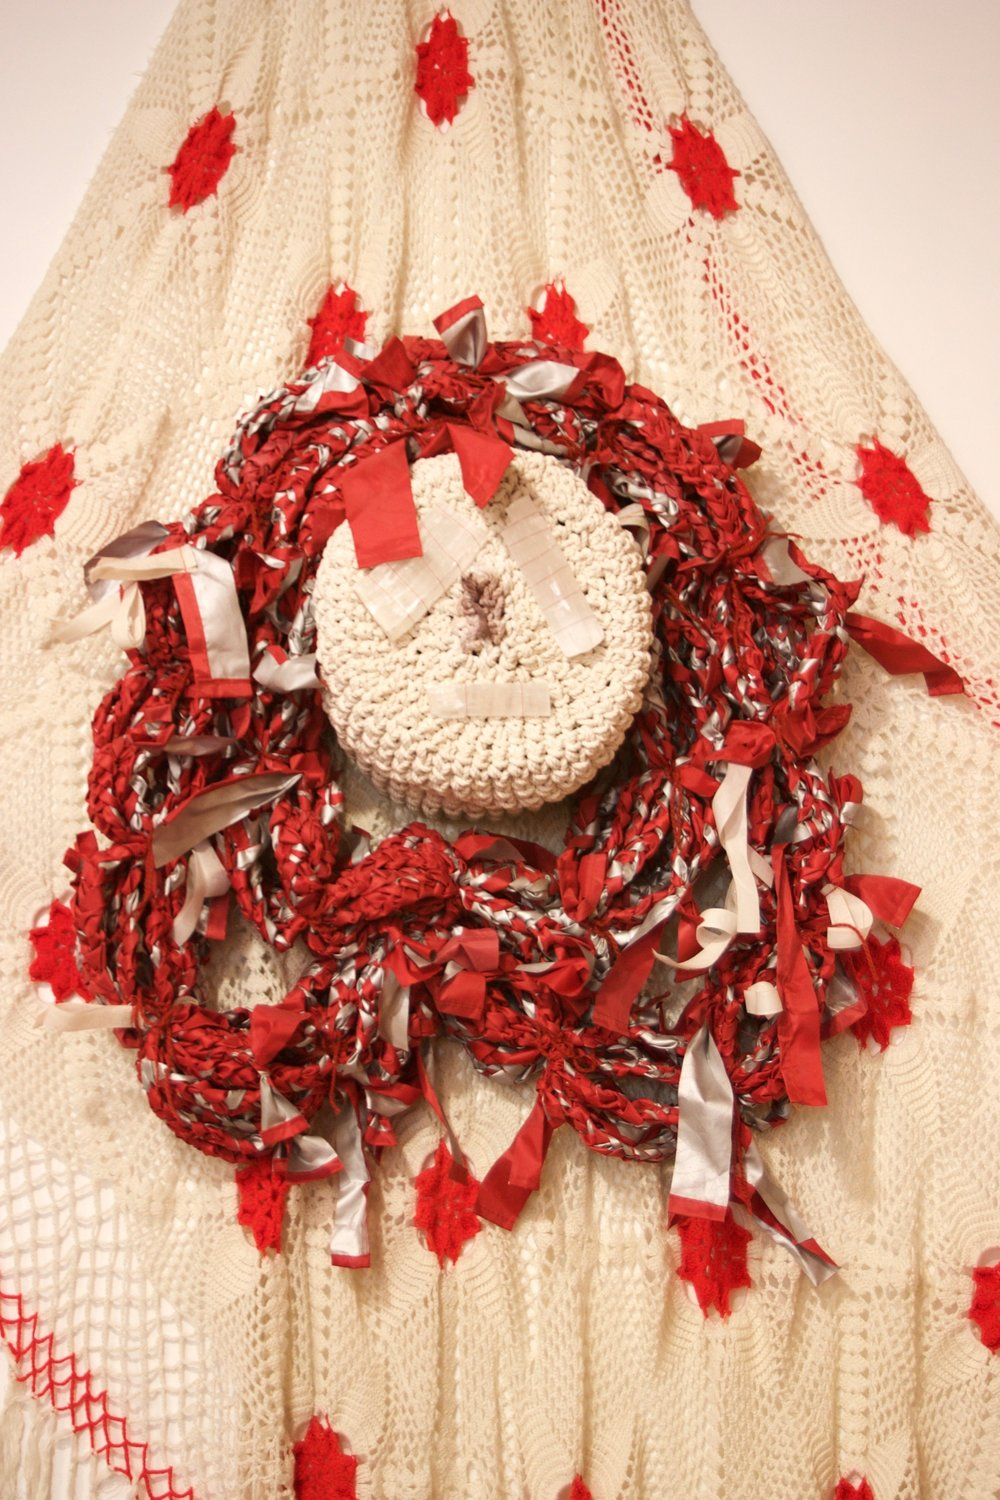 This is a Red Tent , mixed textiles, selenite crystals, blood, variable dimensions